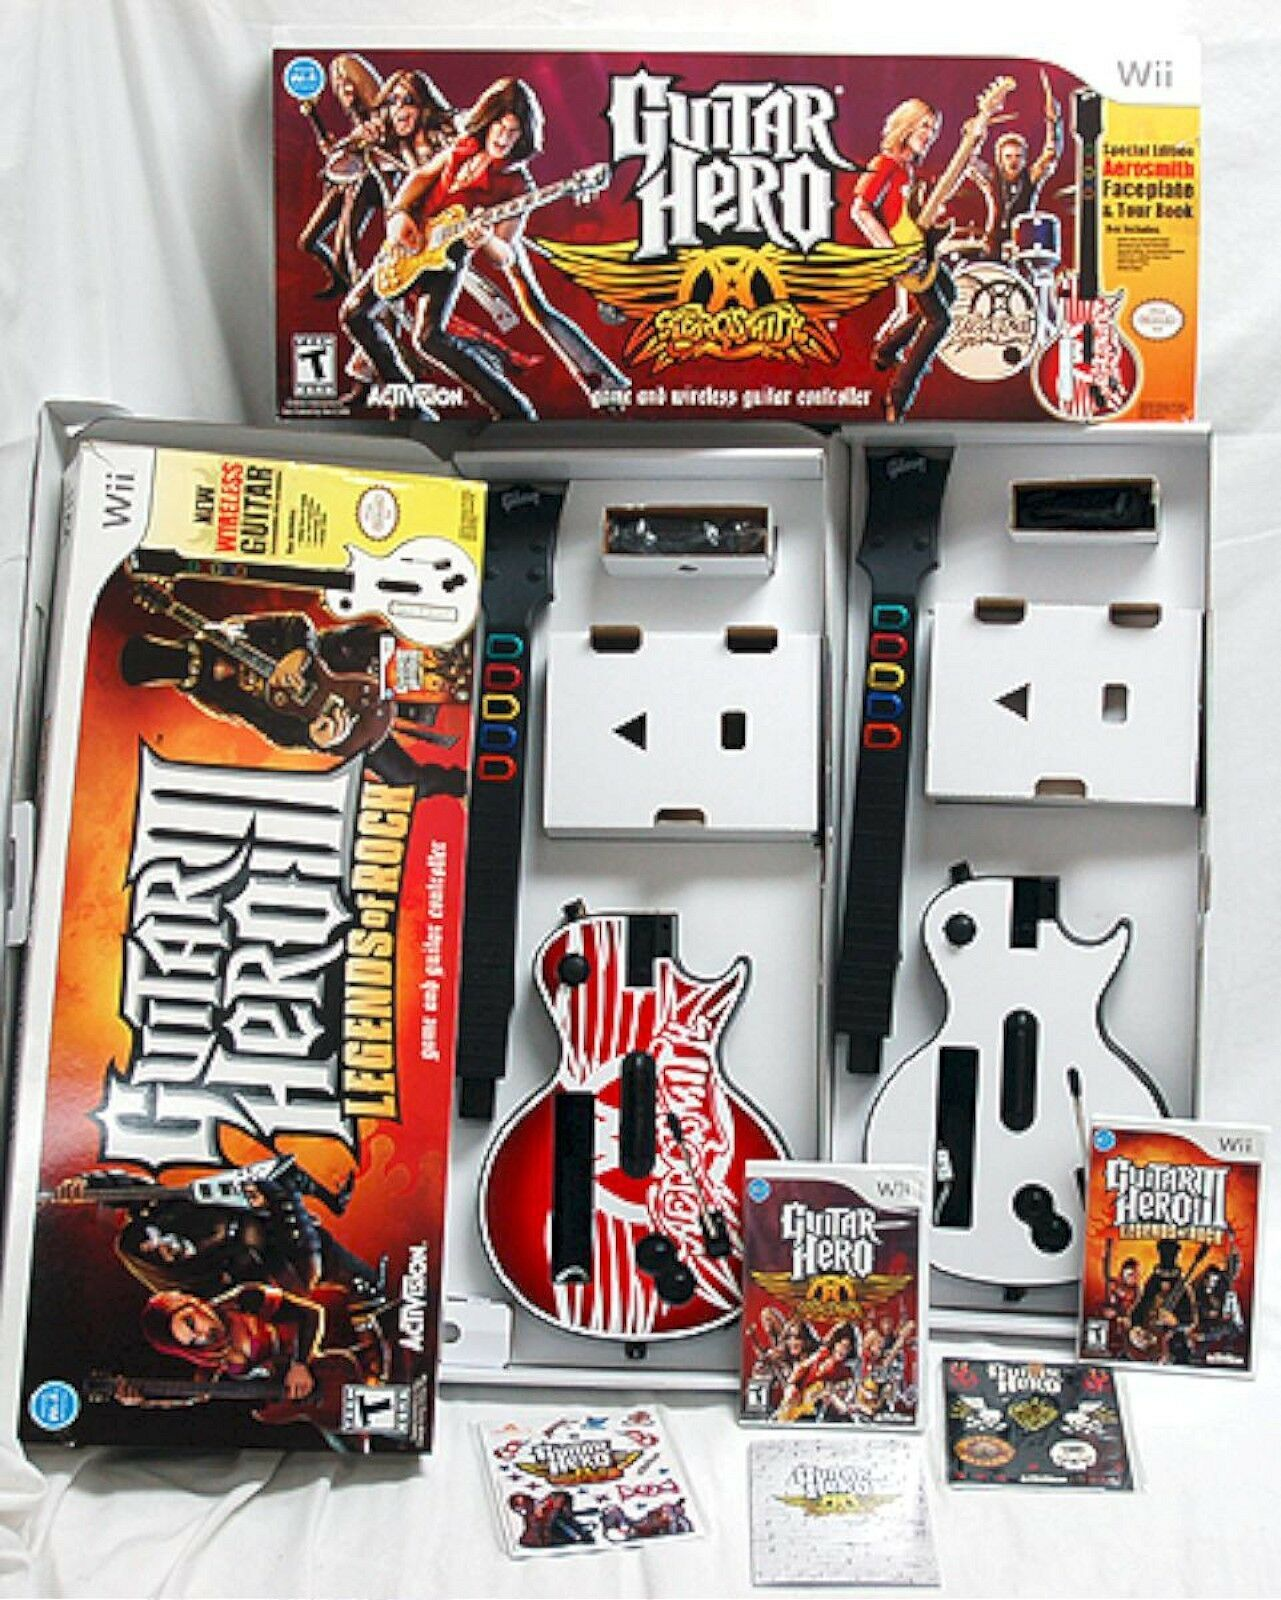 nintendo wii wii u guitar hero 3 aerosmith bundle 2 guitars 2 games set iii ebay. Black Bedroom Furniture Sets. Home Design Ideas